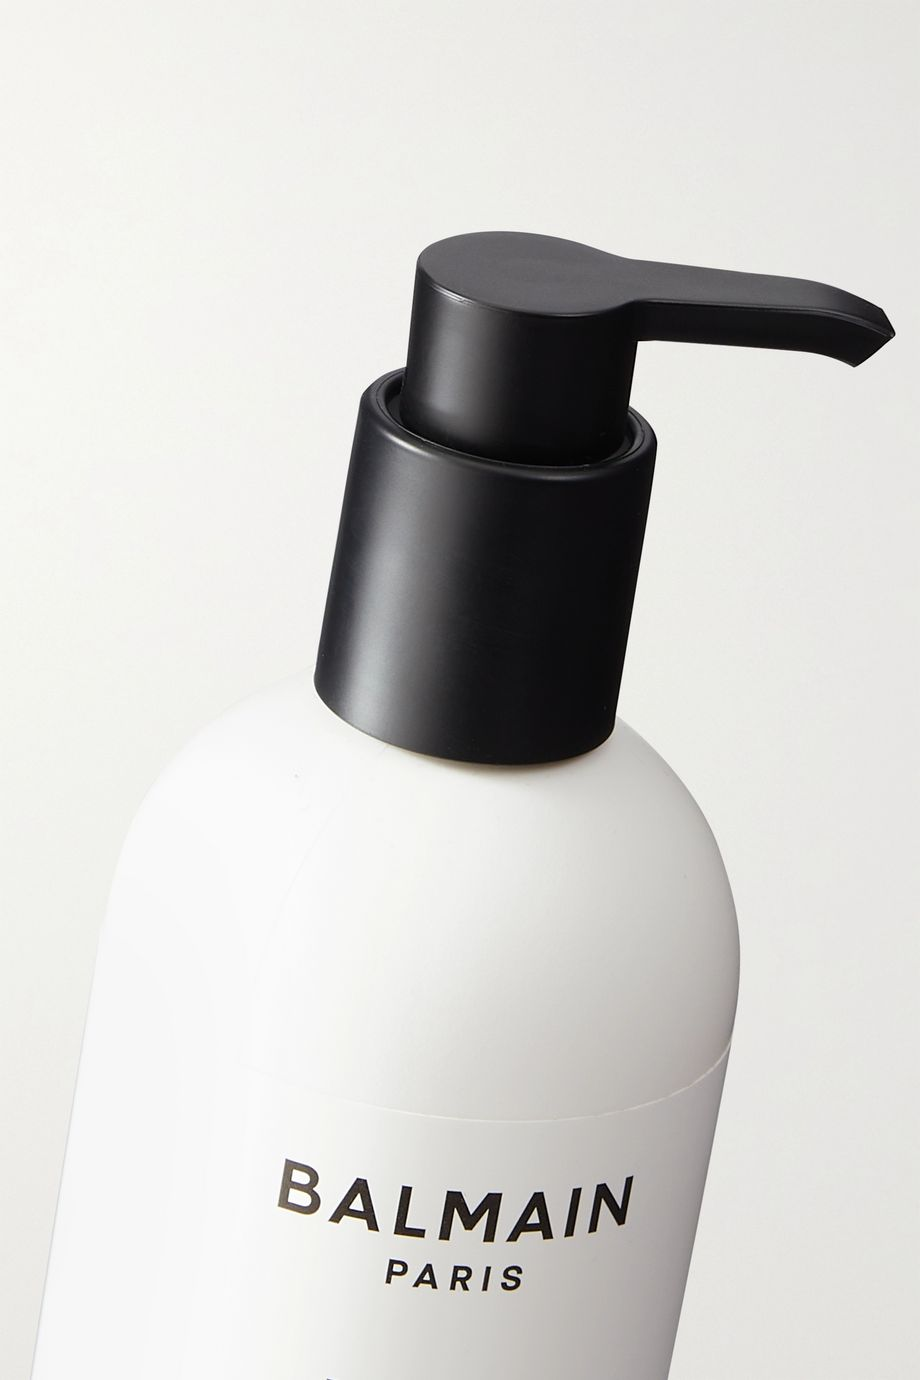 BALMAIN PARIS HAIR COUTURE White Pearl Shampoo, 300ml